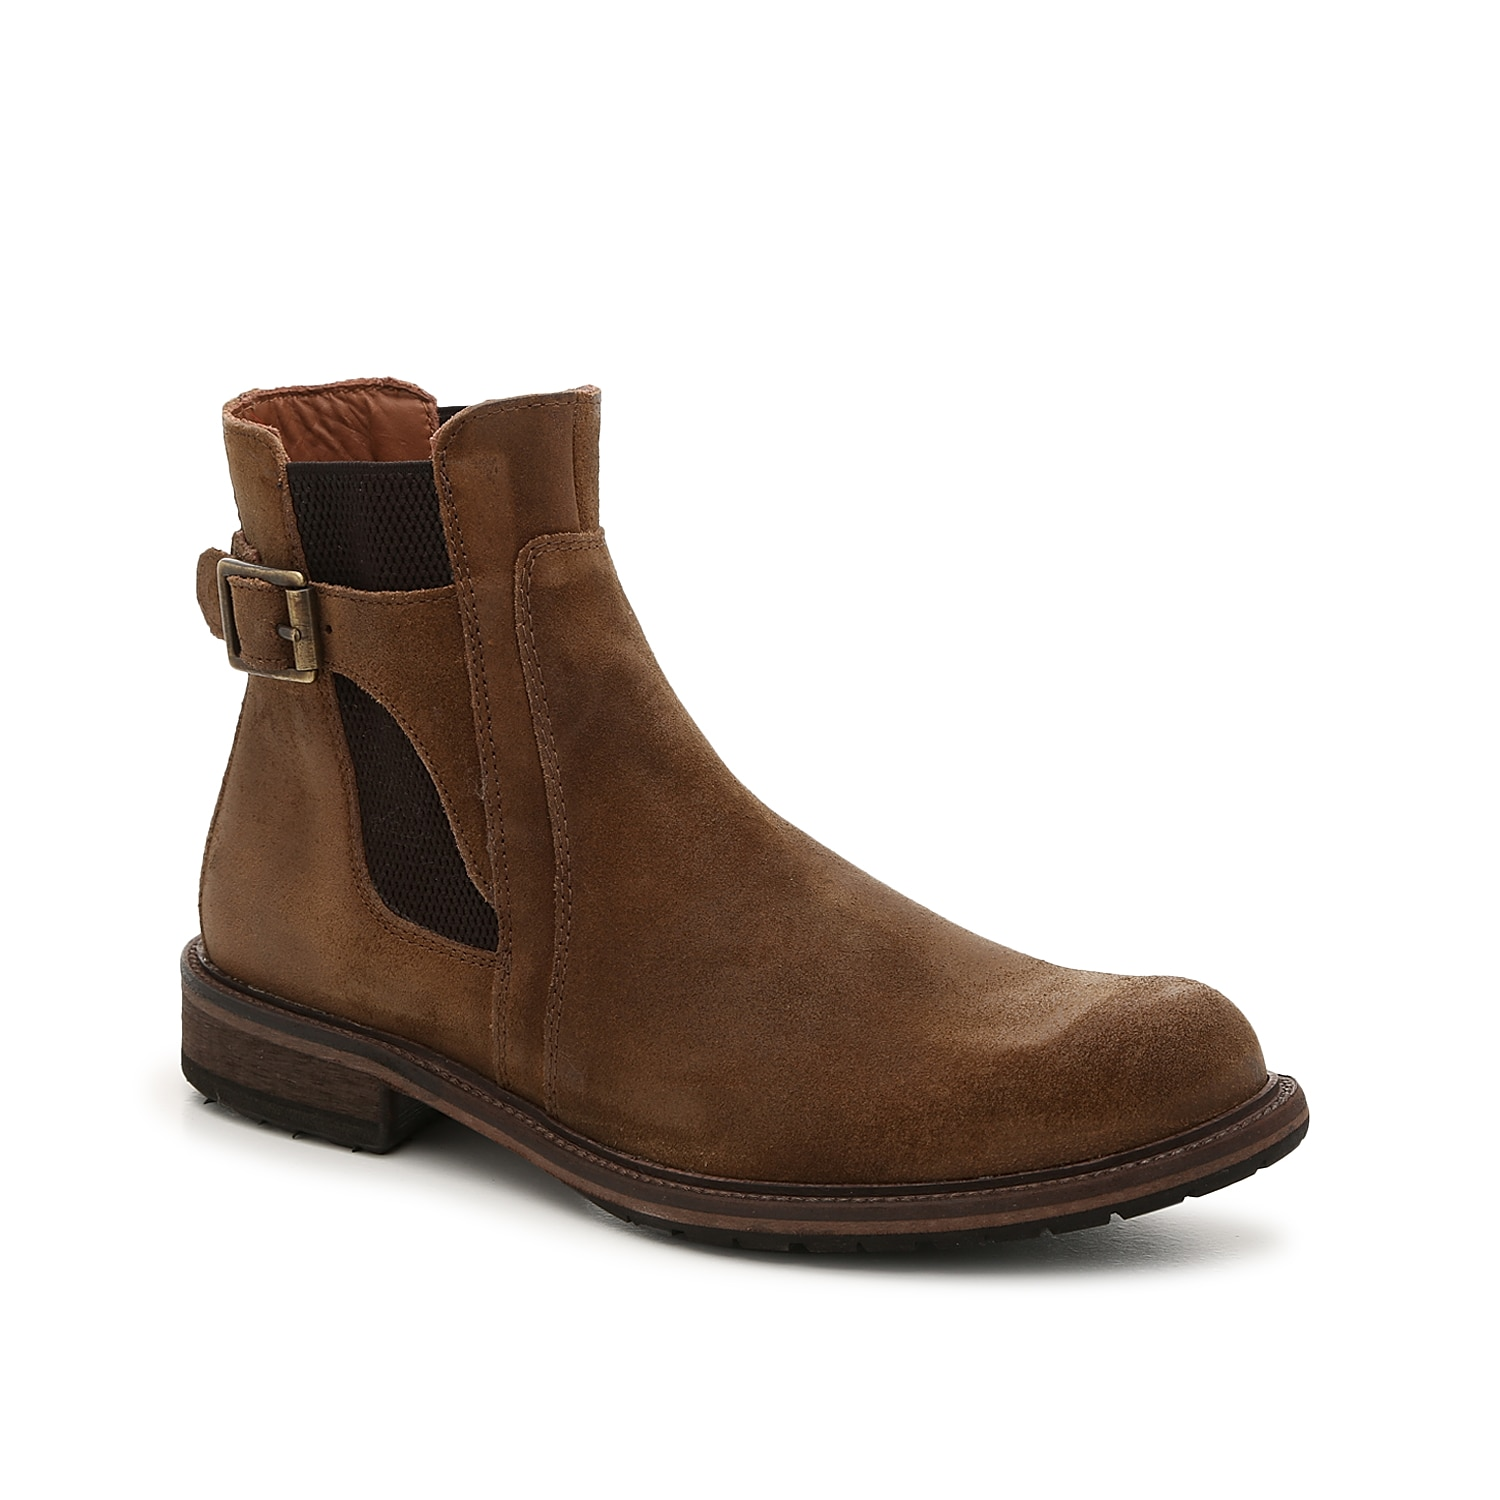 Take your personal look up a notch with the Lofting boot from Johnston & Murphy. Featuring a classic Chelsea boot design with a decorative buckle accent, this ankle boot exudes trendy yet tailored style.